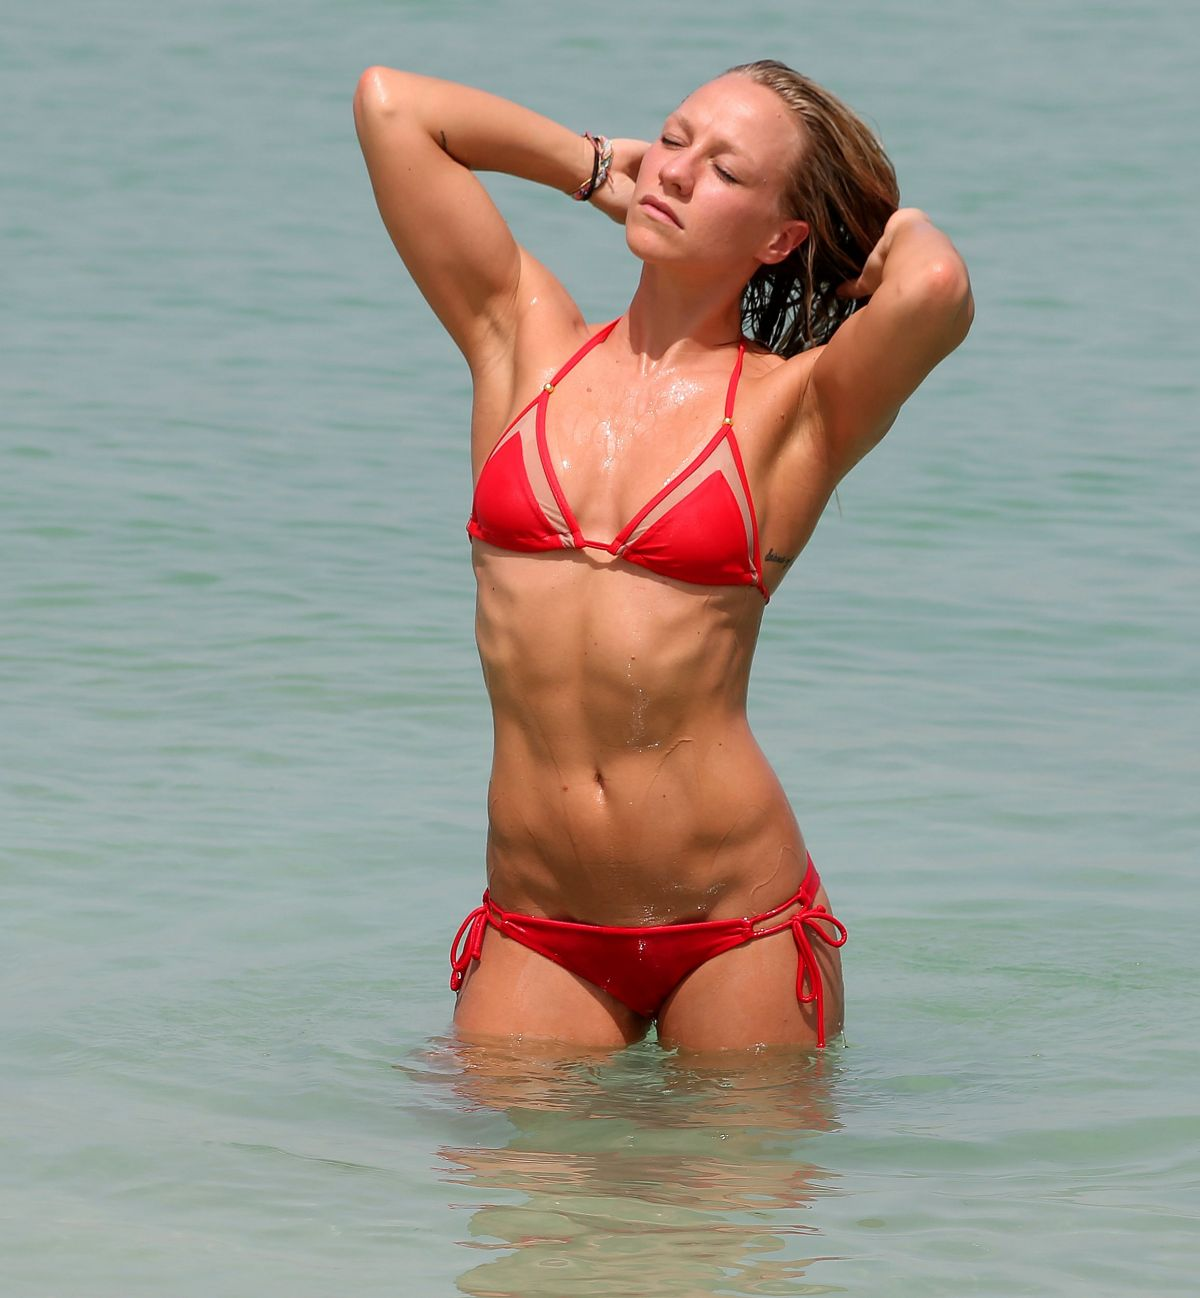 CHLOE MADELEY in Bikini on the Beach in Dubai 06/02/2015